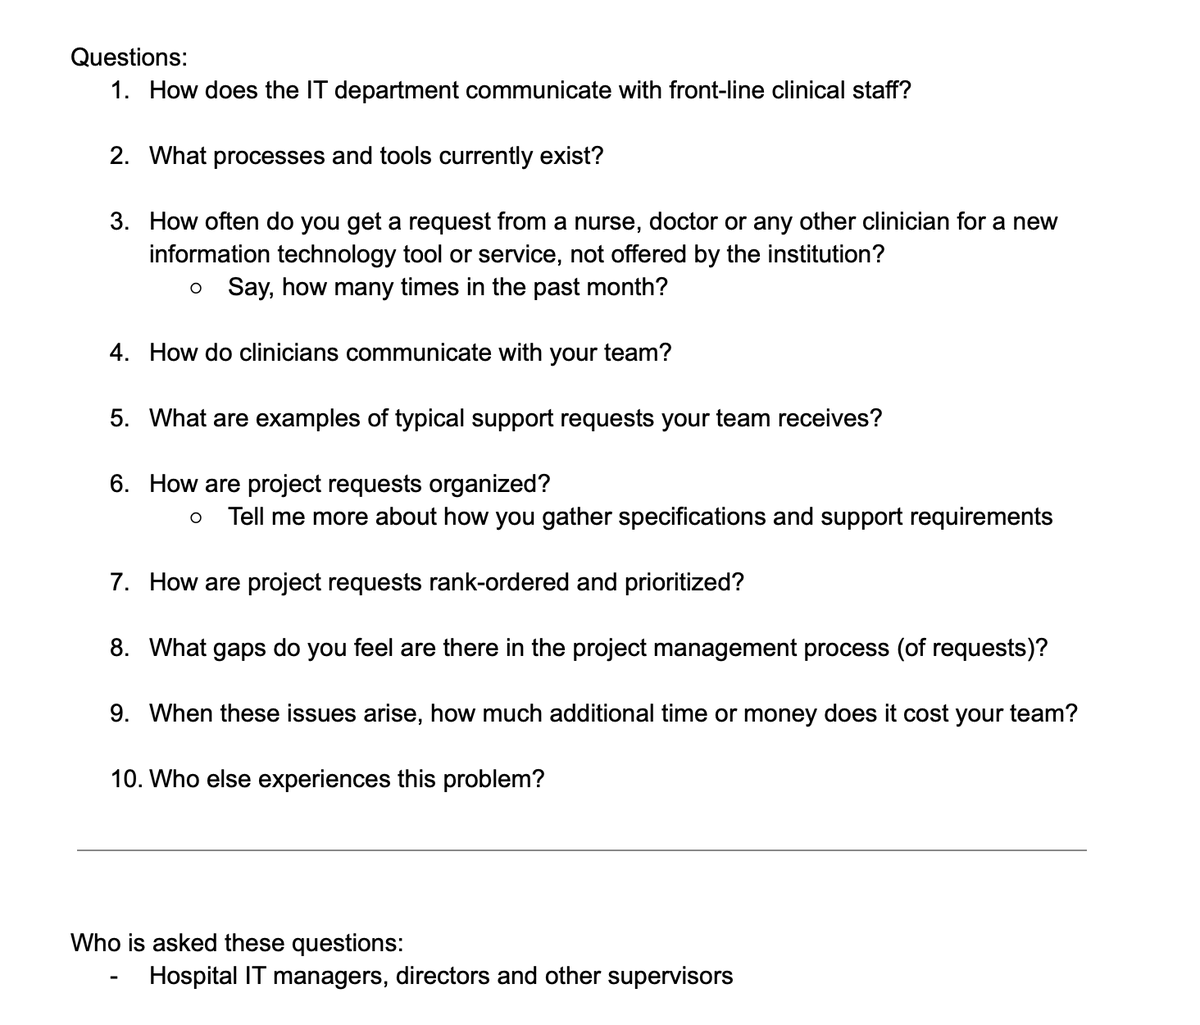 Before I write a line of code or business plan, I want to make sure every product we design solves a REAL issue.  I do this with a series of user interviews with stakeholders.  I am currently studying how hospital IT depts communicate with clinicians.  Here is what we are asking: pic.twitter.com/UAT29U949D